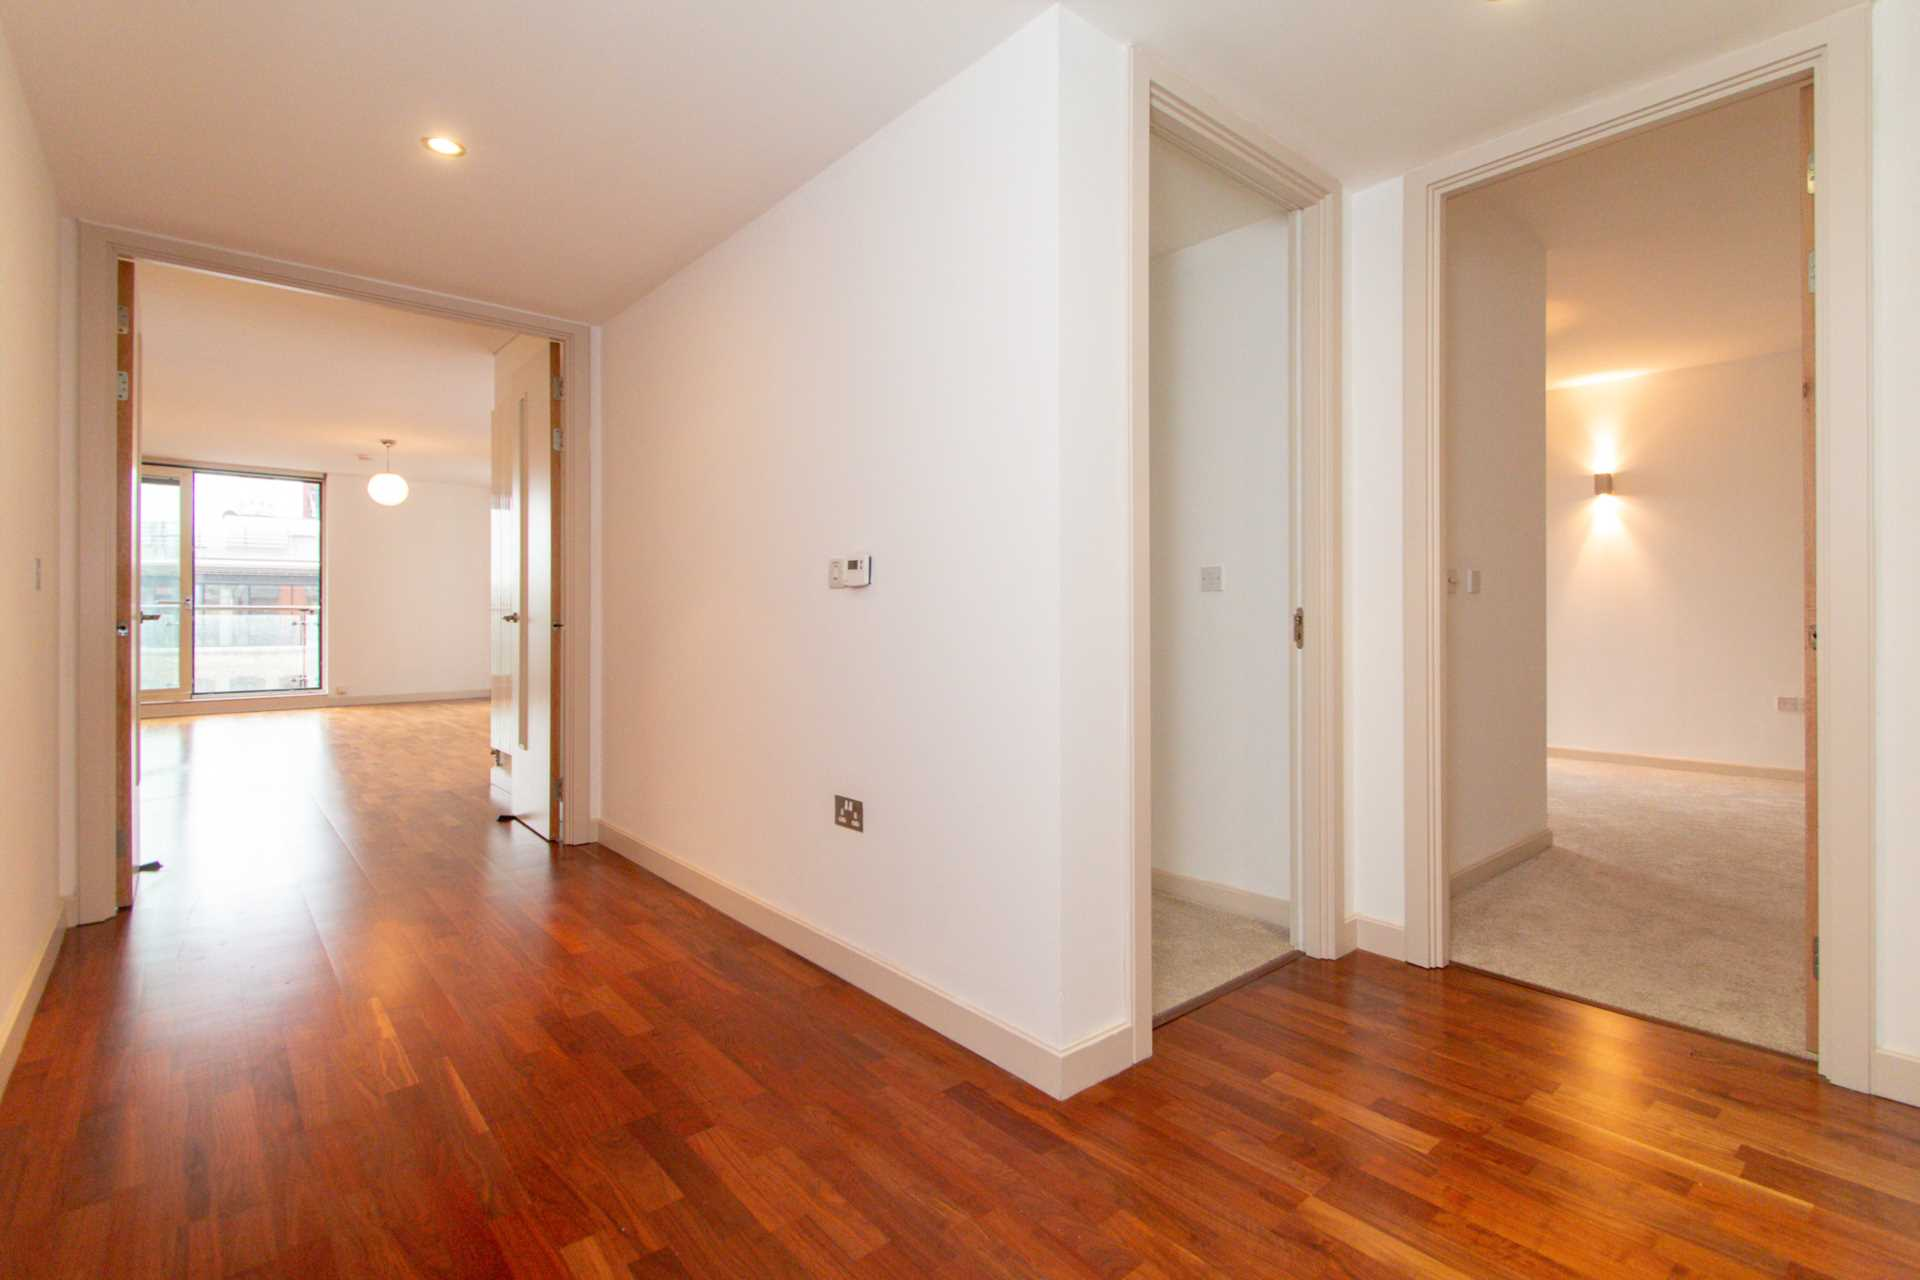 Leftbank, Manchester, VIRTUAL TOUR AVAILABLE, Image 13